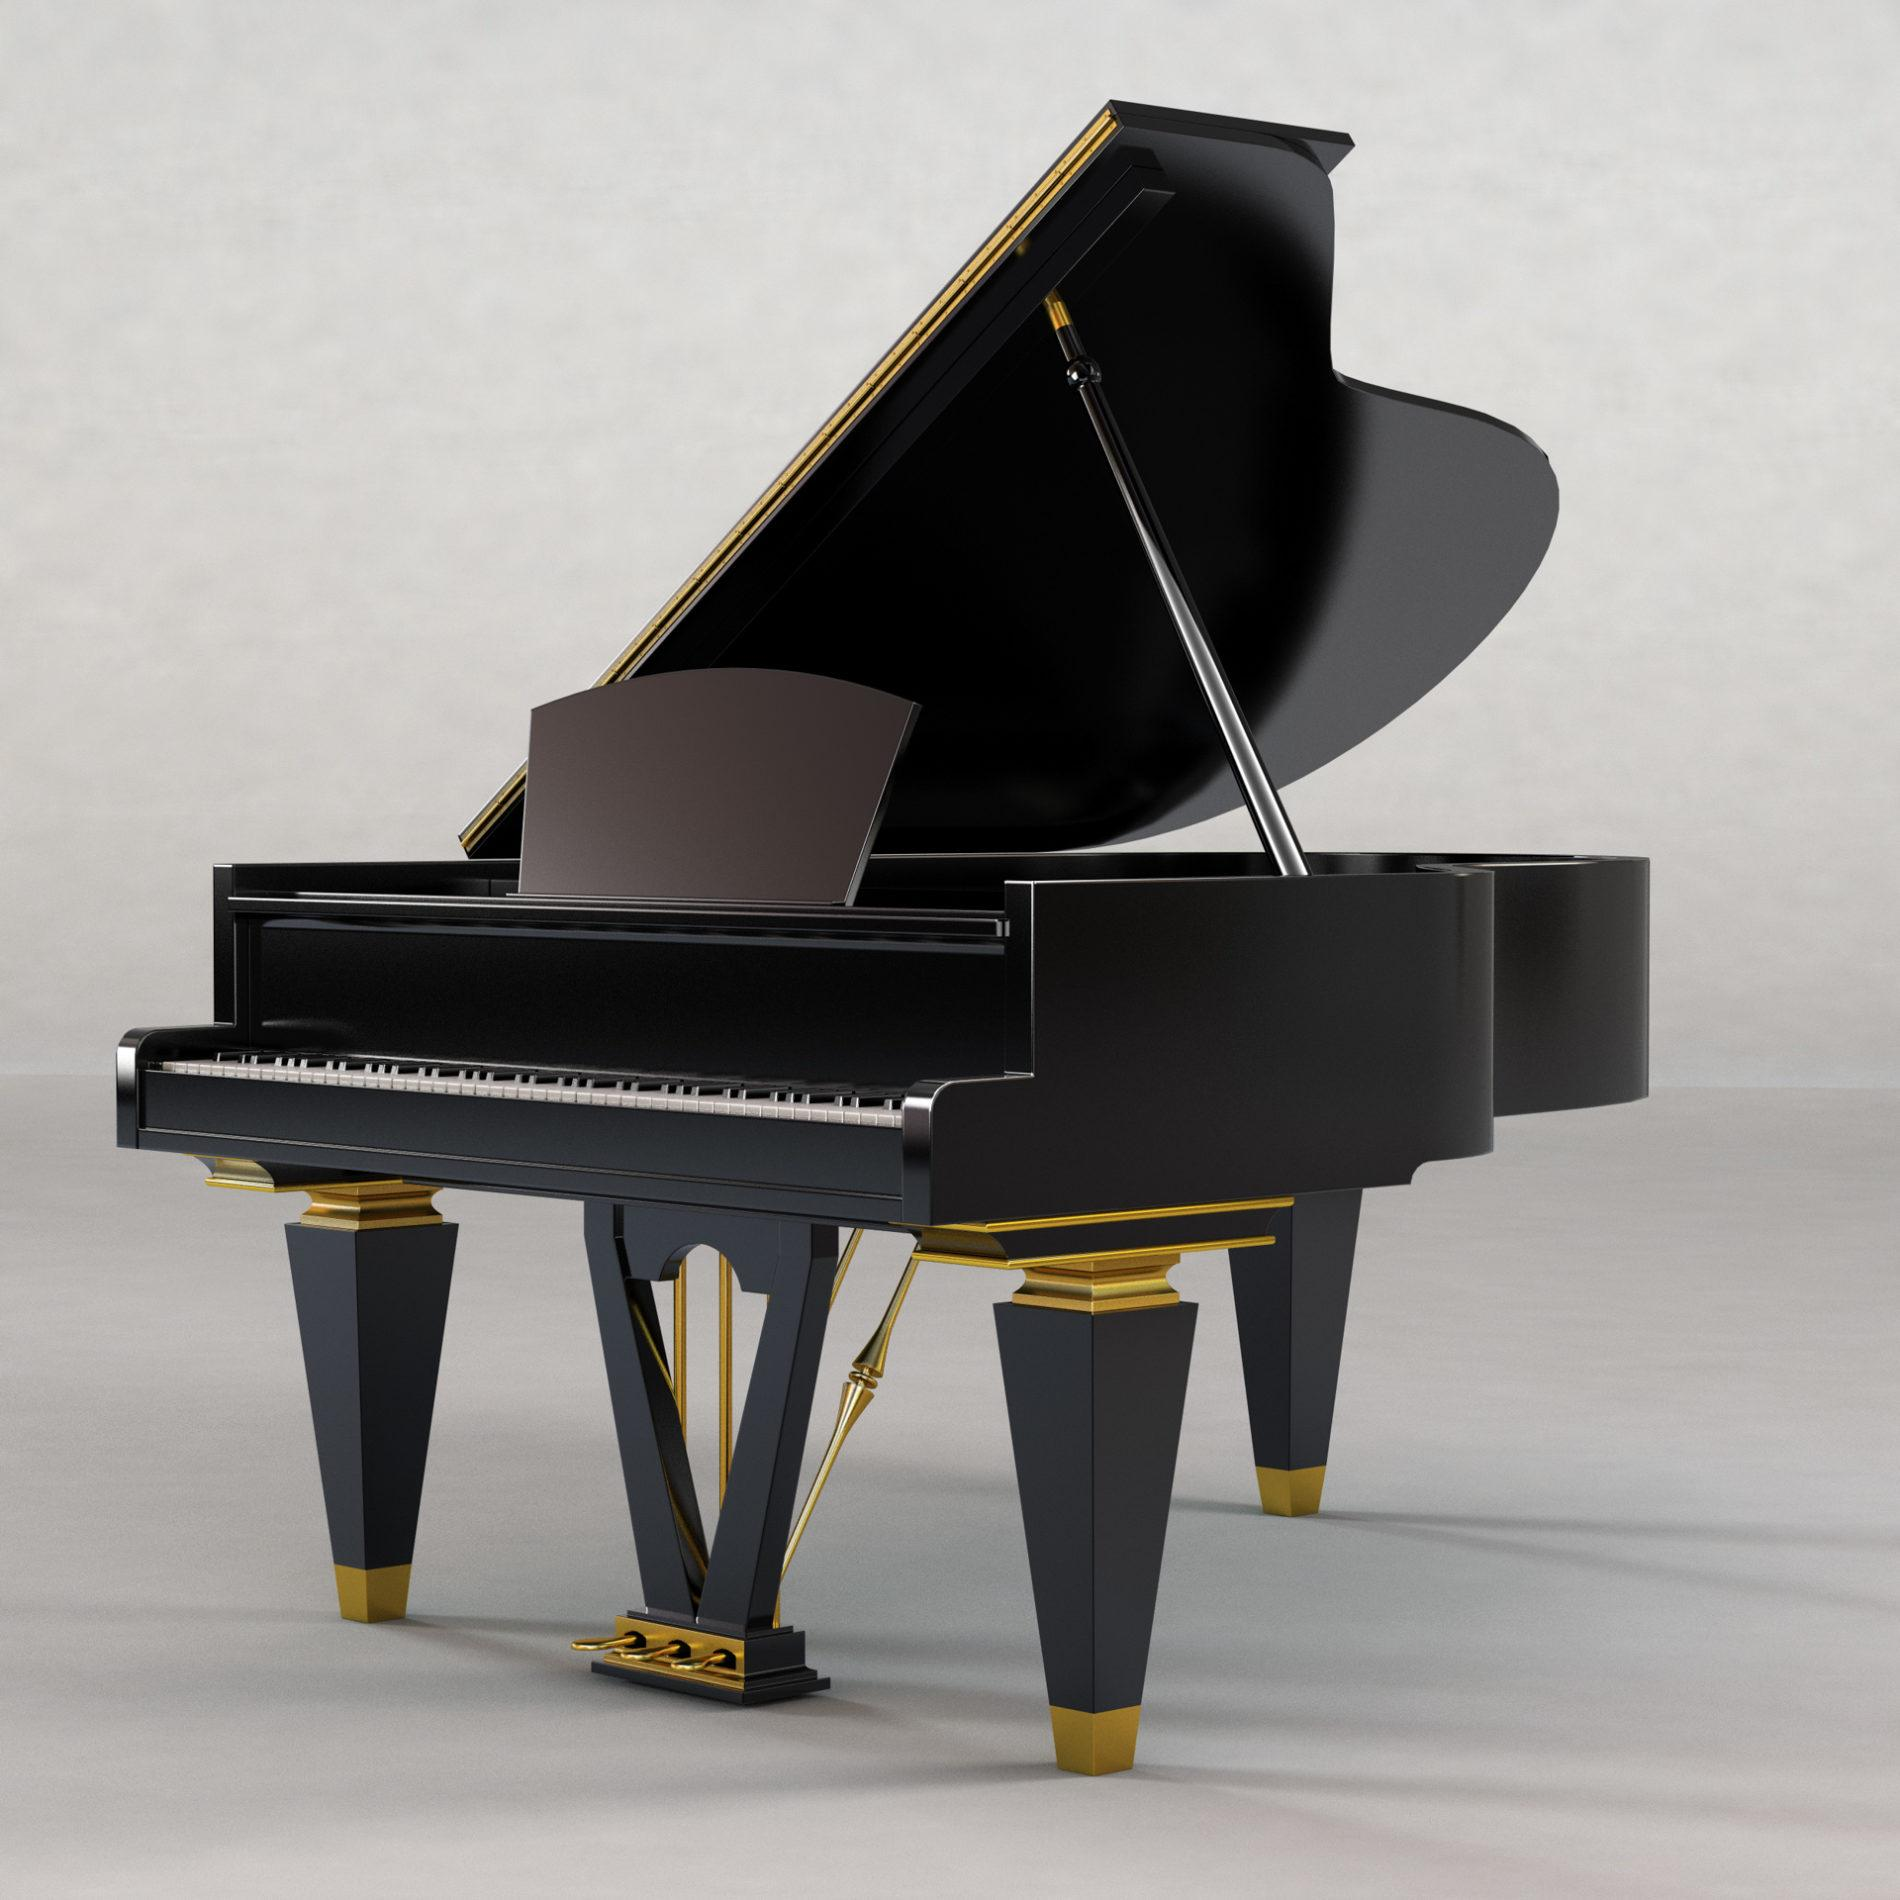 Architectural rendering of piano 3D design model